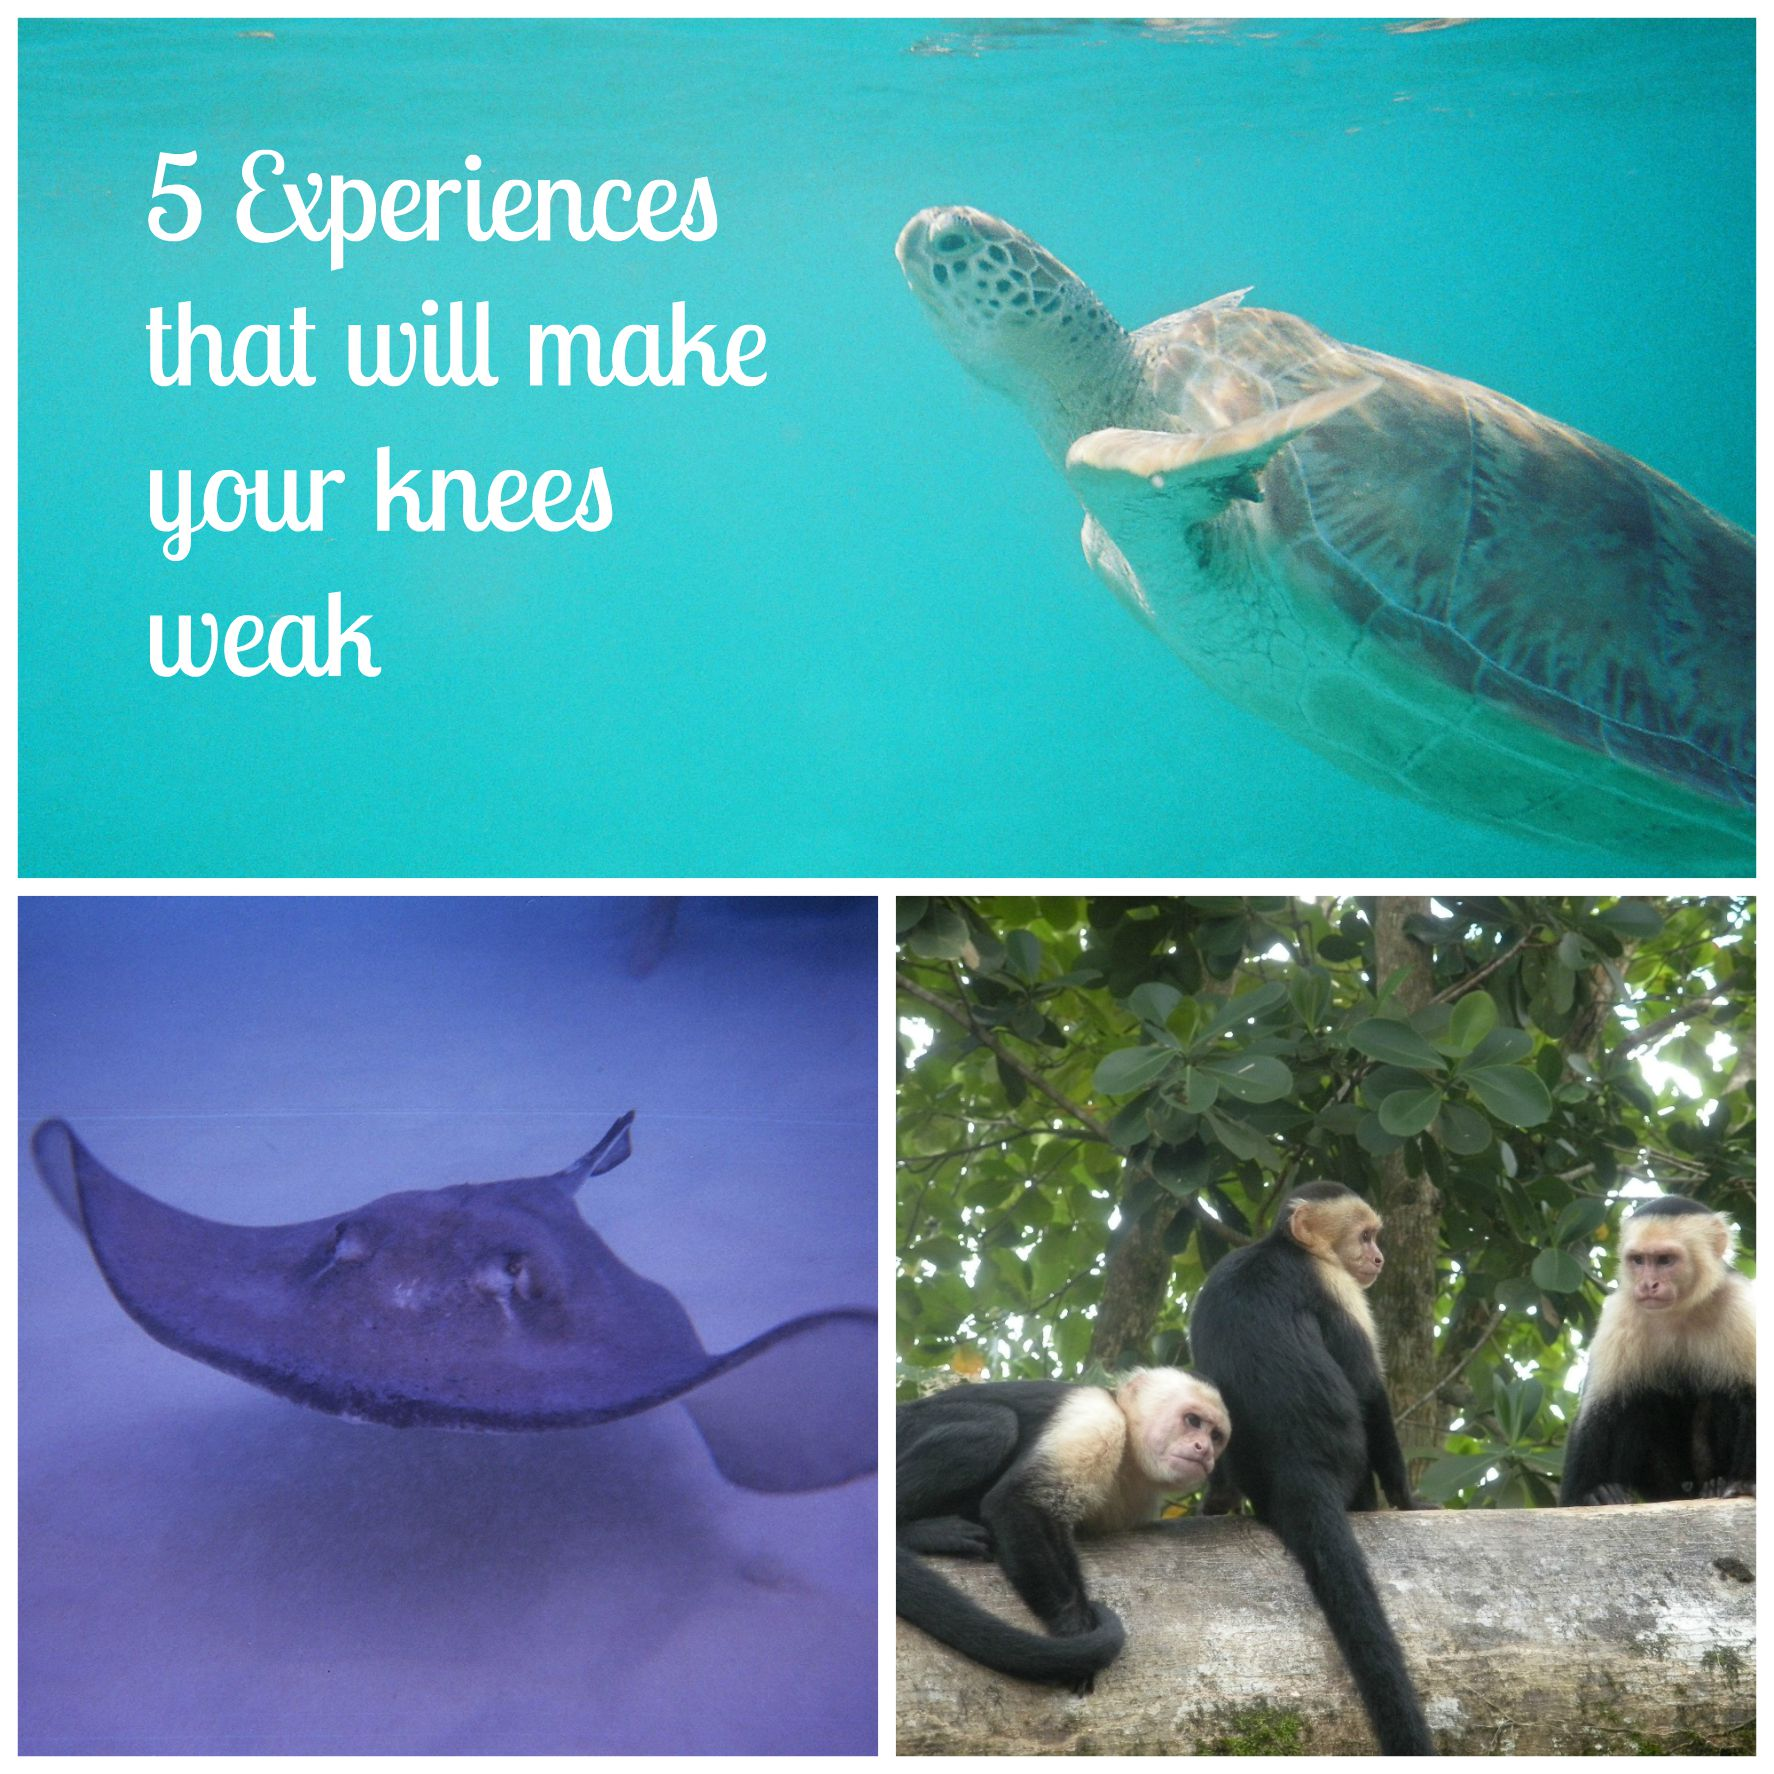 Five experiences that will make your knees weak